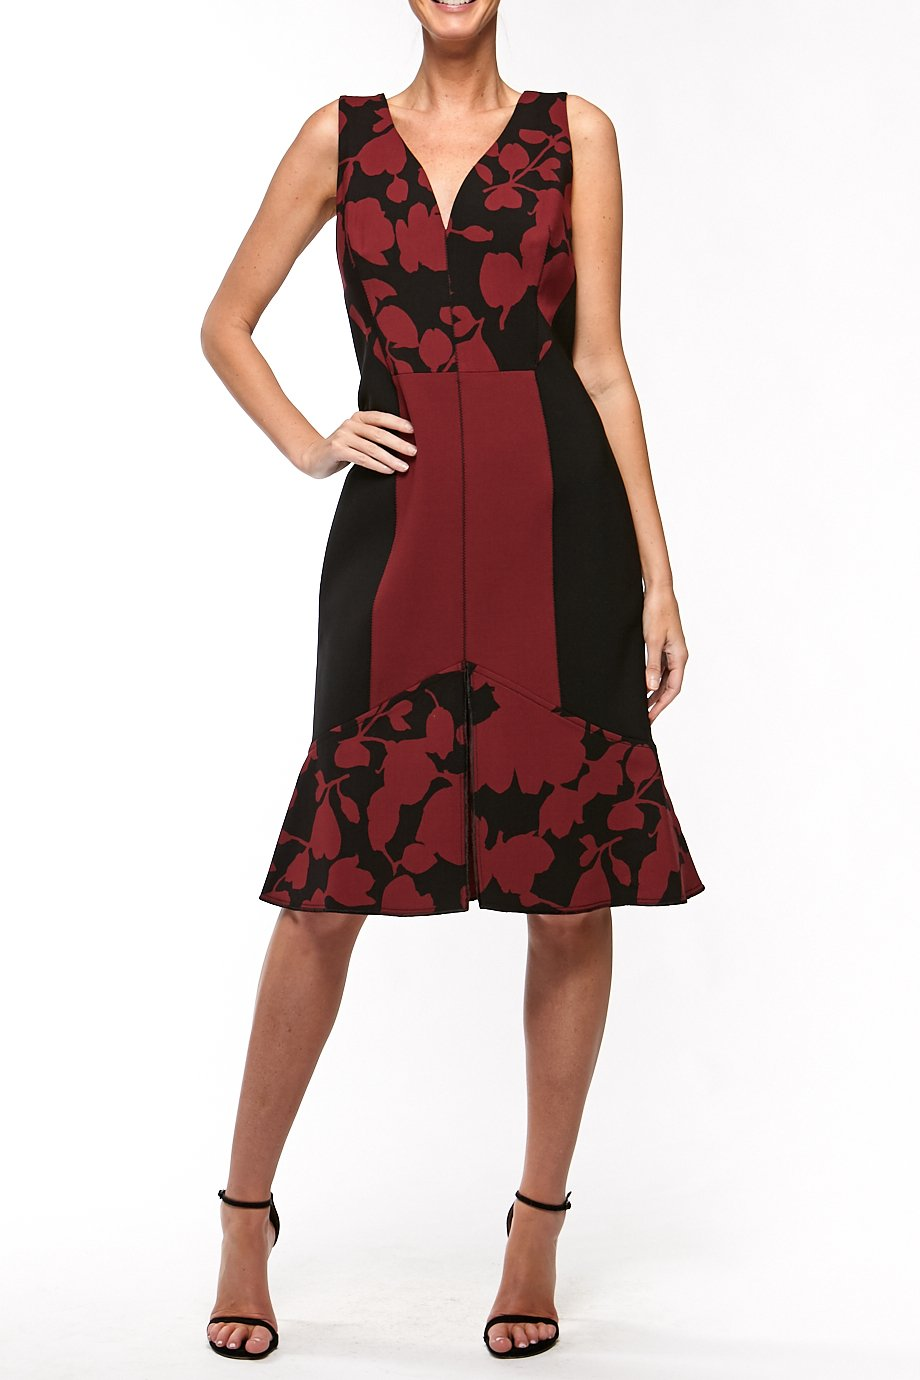 Oscar de la Renta Sweater dress